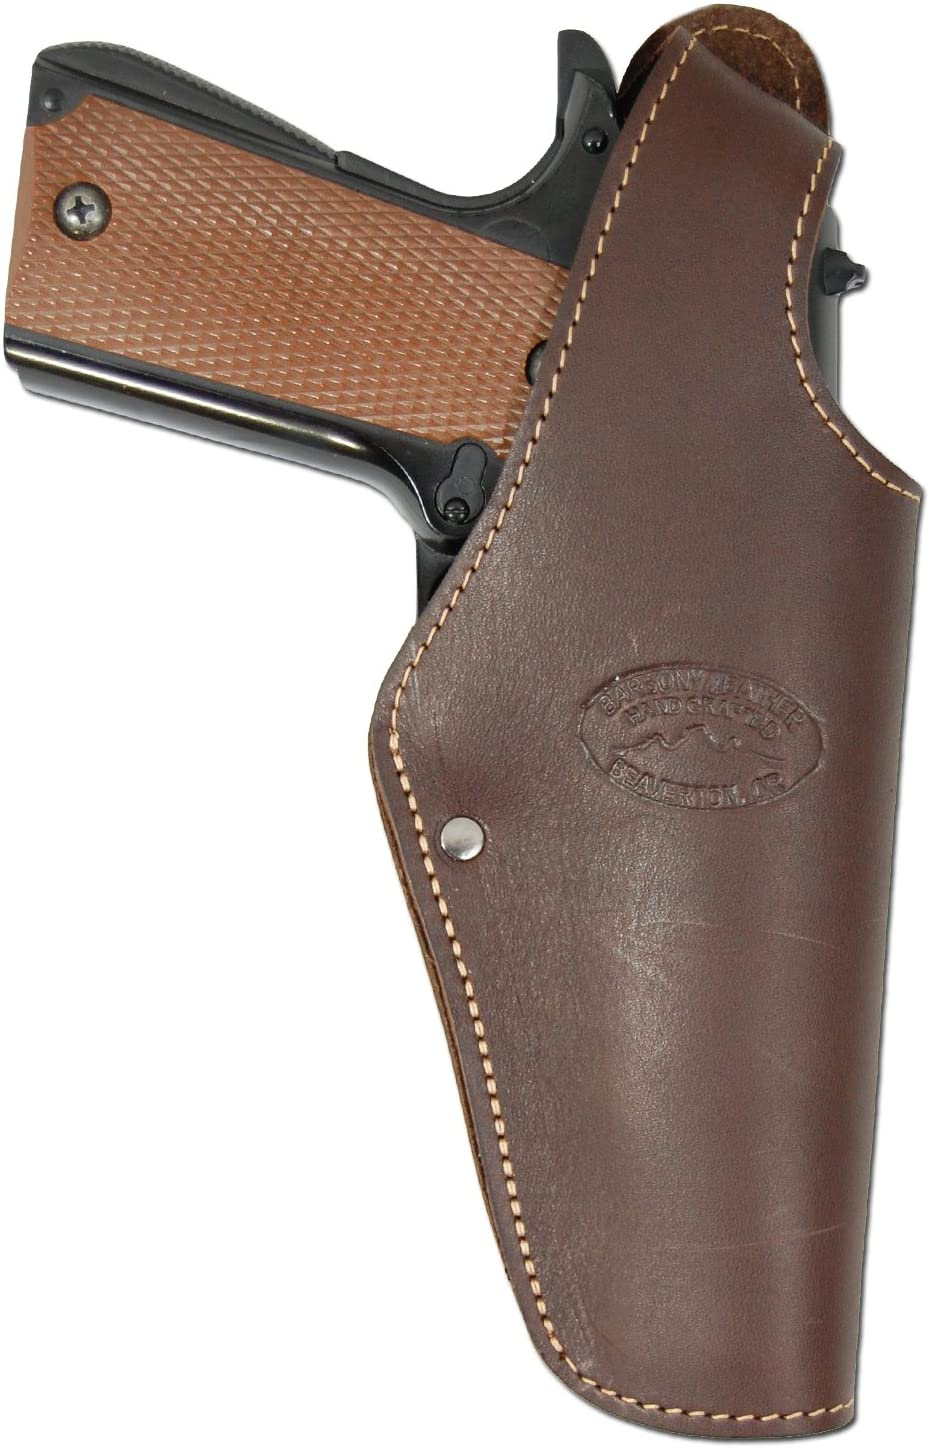 Barsony New Brown Leather OWB Belt Clip Holster for Full Size 9mm 40 45